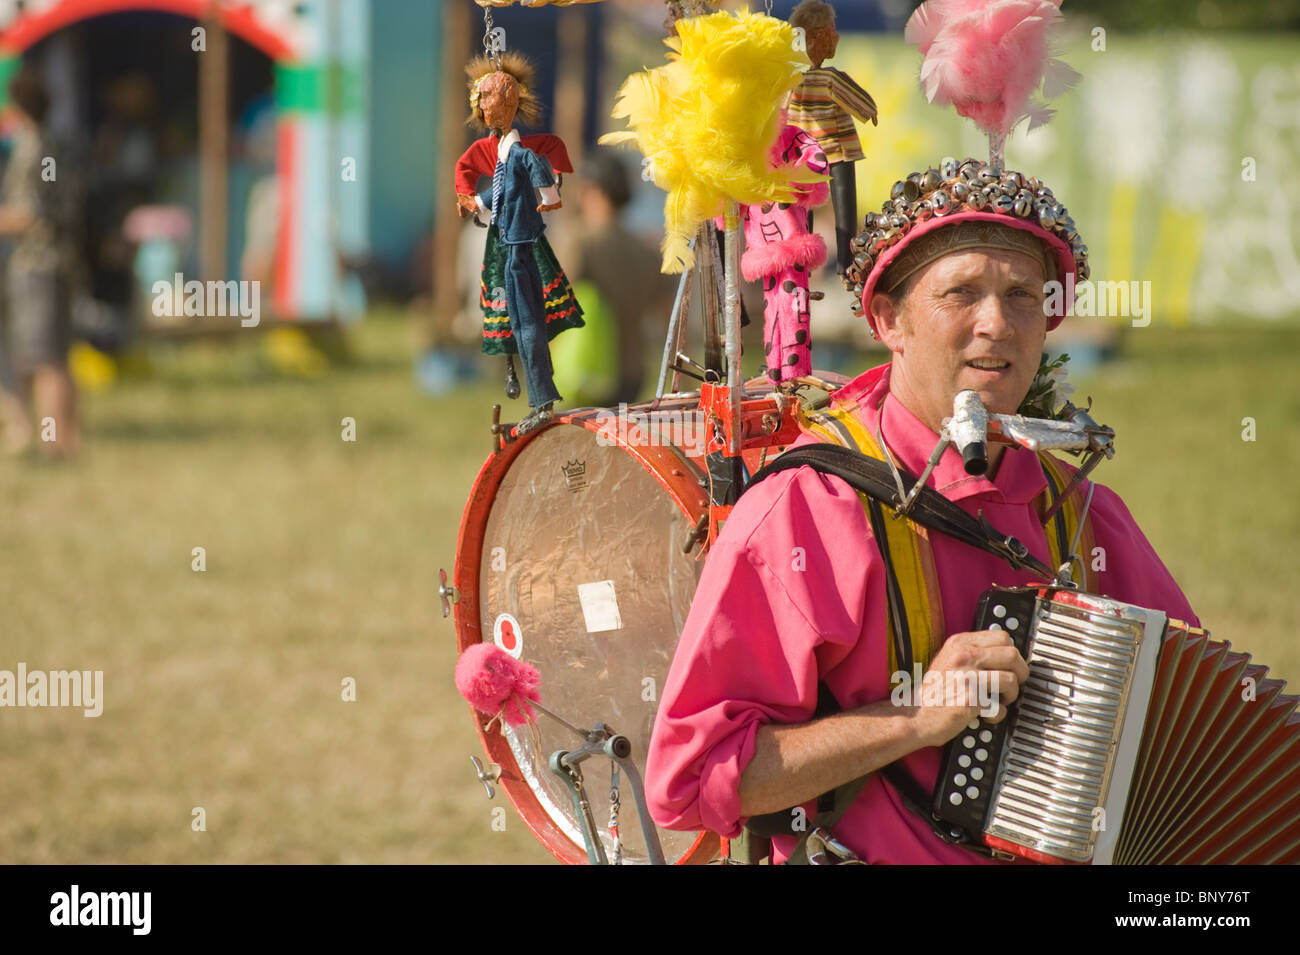 Glastonbury Festival, Pilton, Somerset, England, UK. Street entertainer in the Theater and Circus area of the festival. - Stock Image